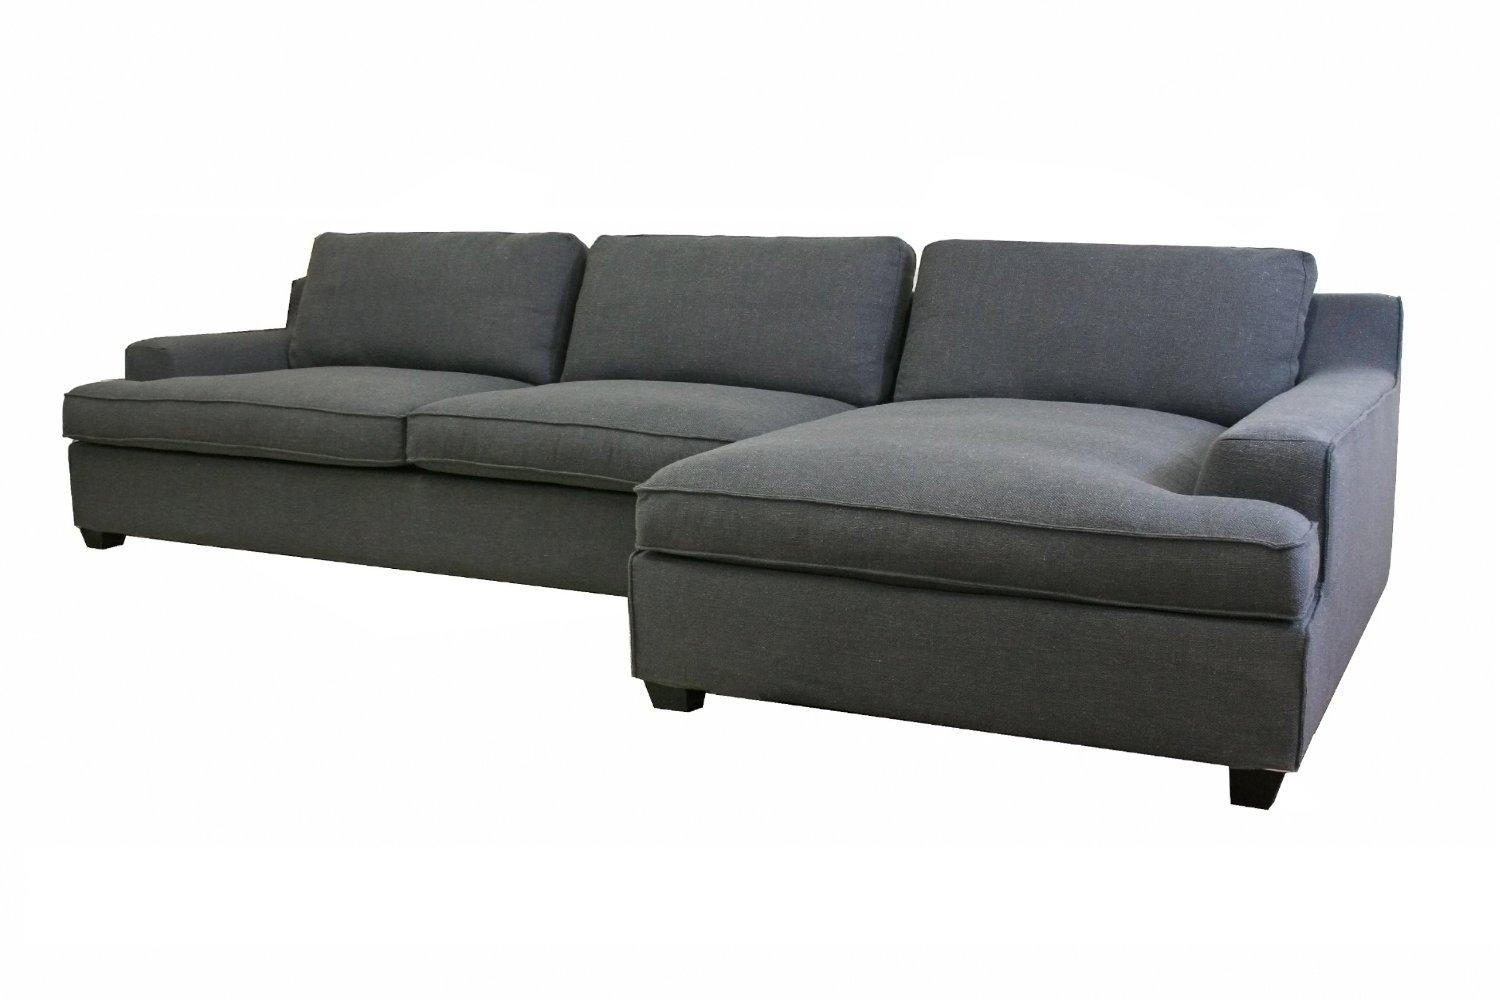 Sofas Center : Brilliant Sectional Sleeper Sofa With Chaise Cool For Sectional Sleeper Sofas With Chaise (Image 18 of 20)